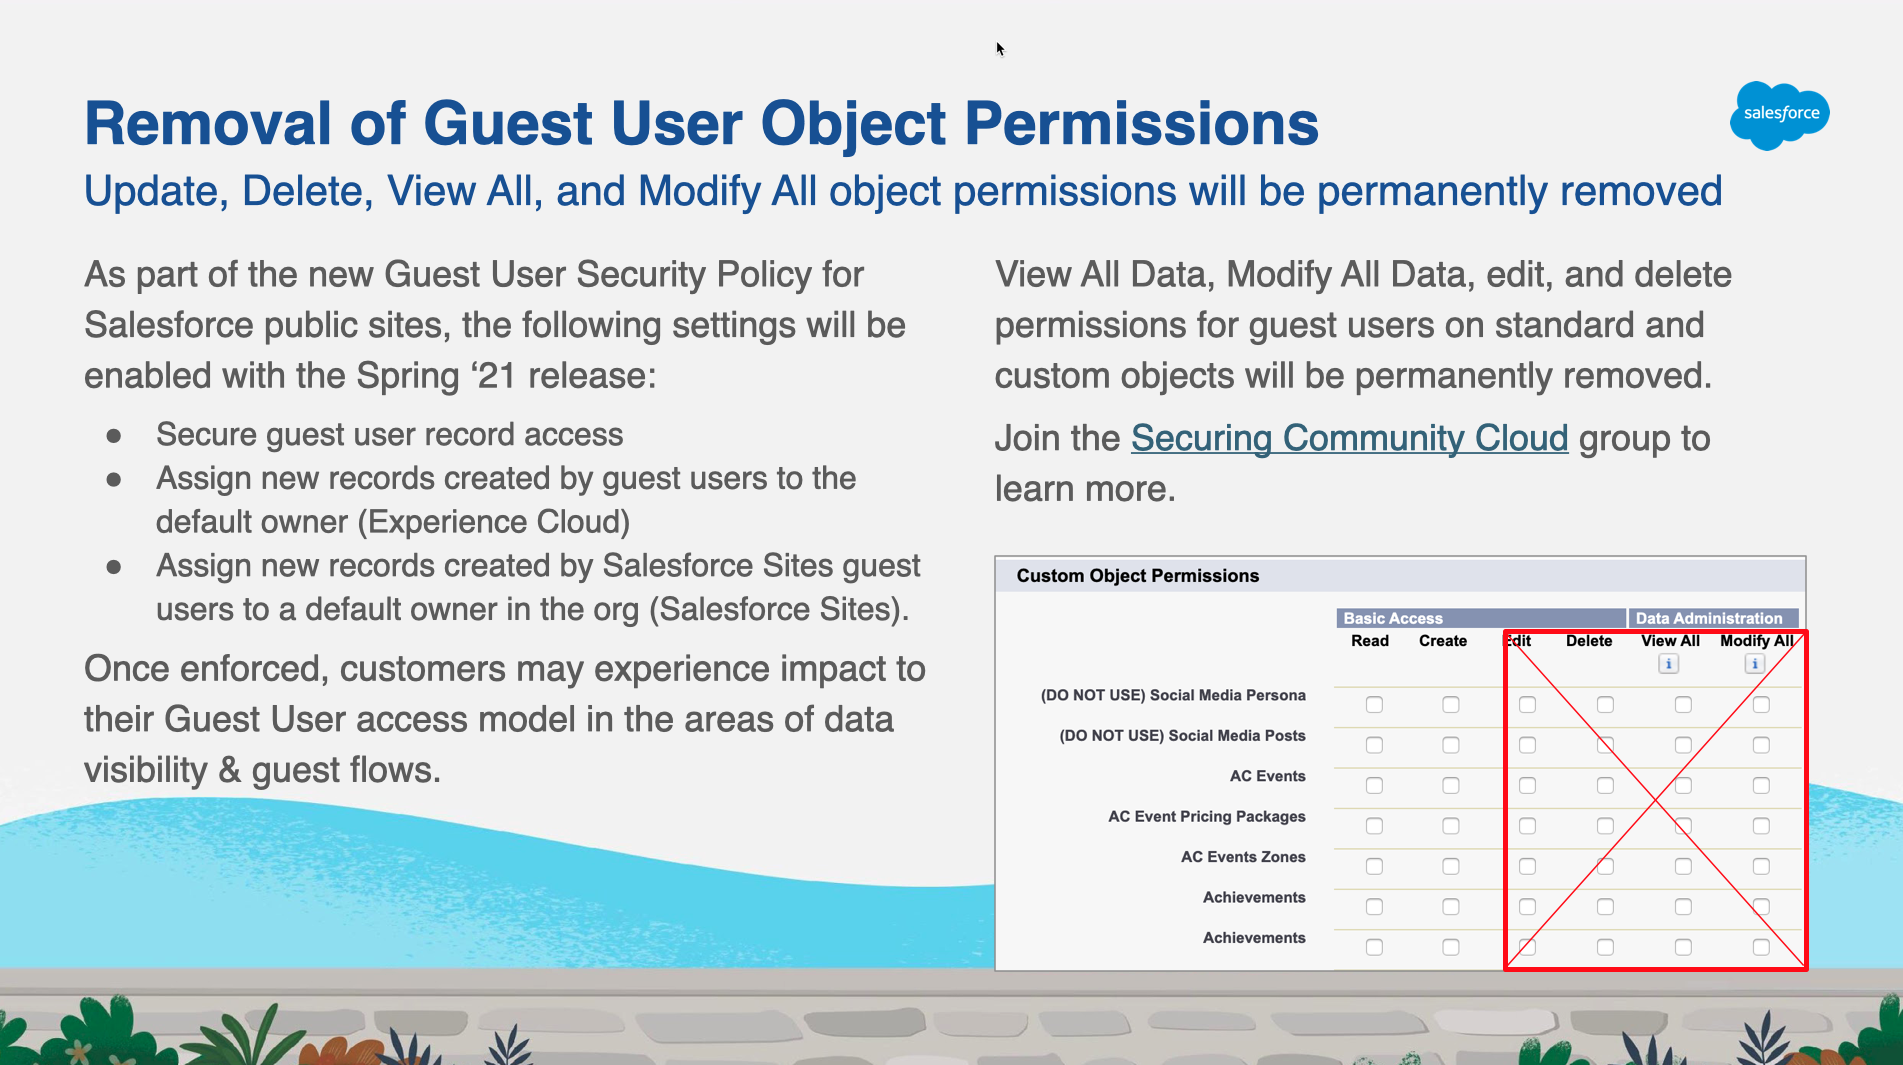 Removal of Guest User Object Permissions